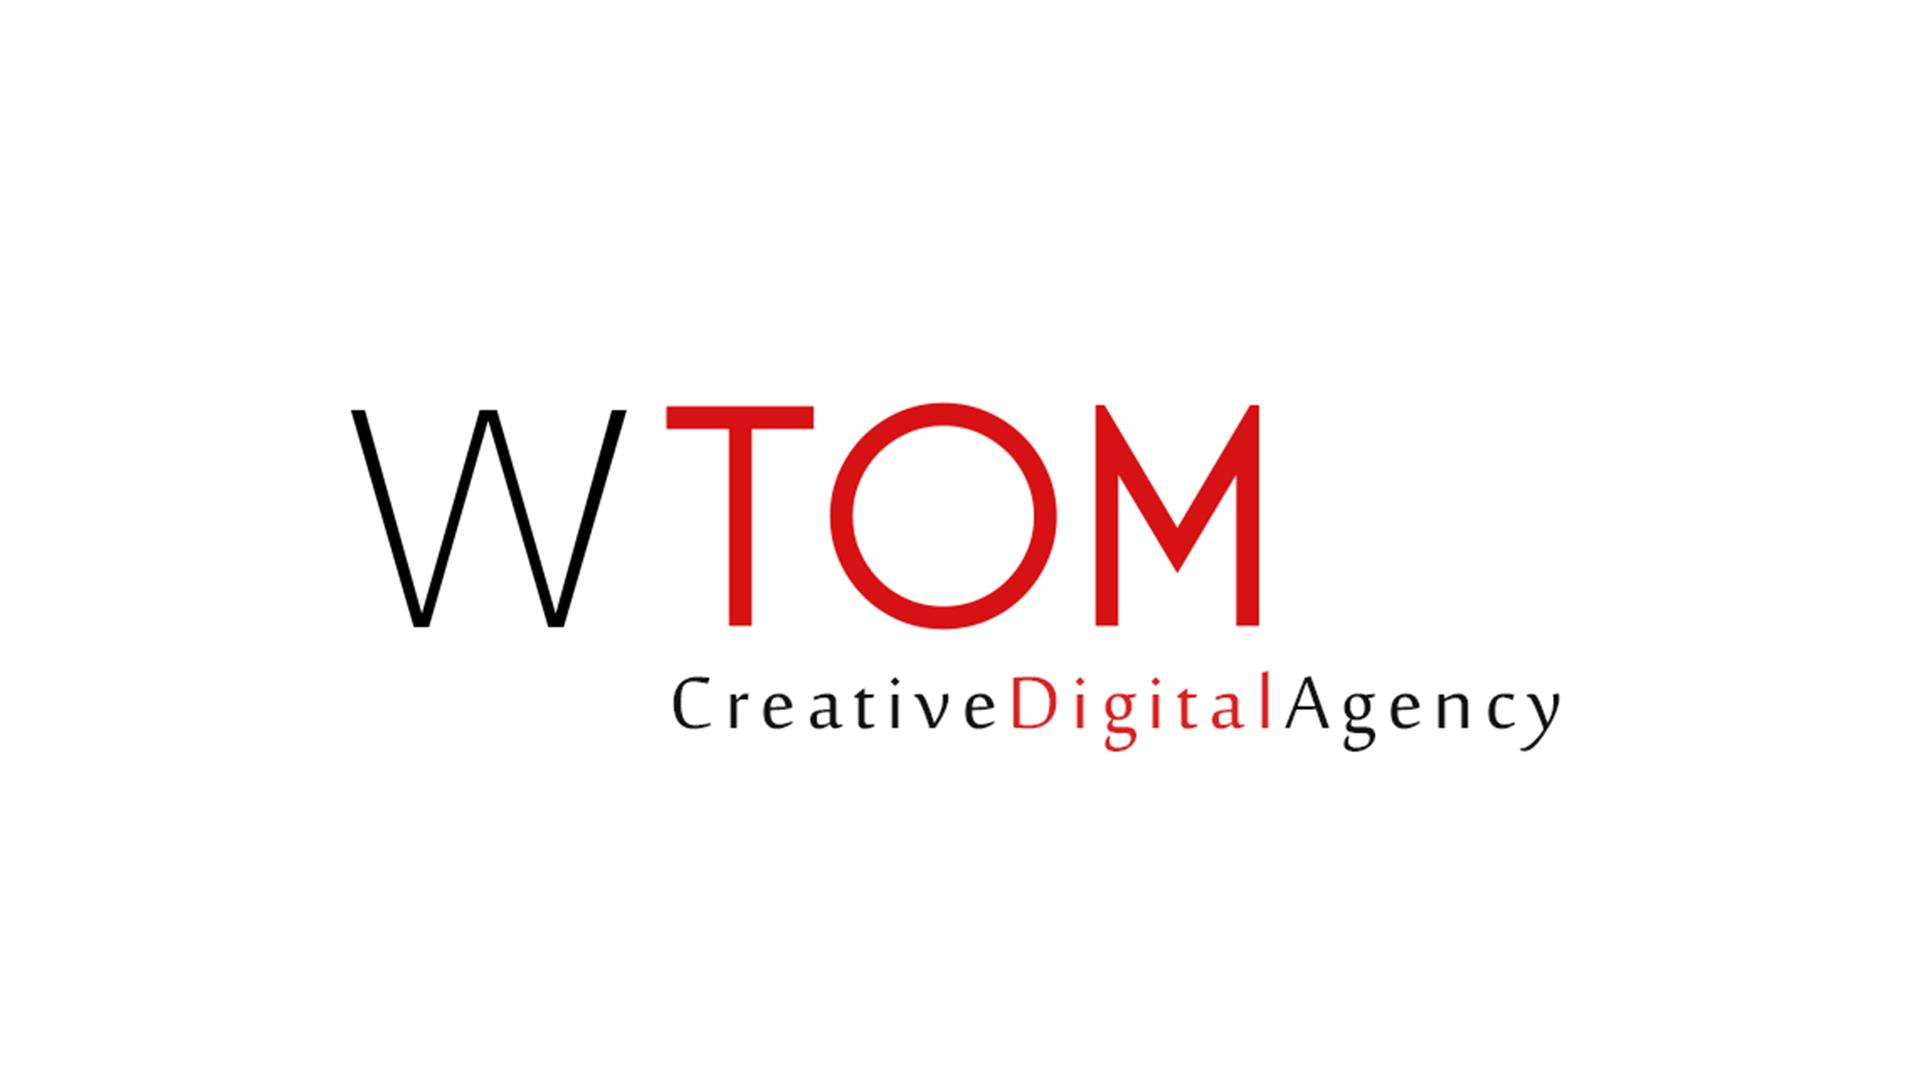 1 WTOM Agency logo backside pixels